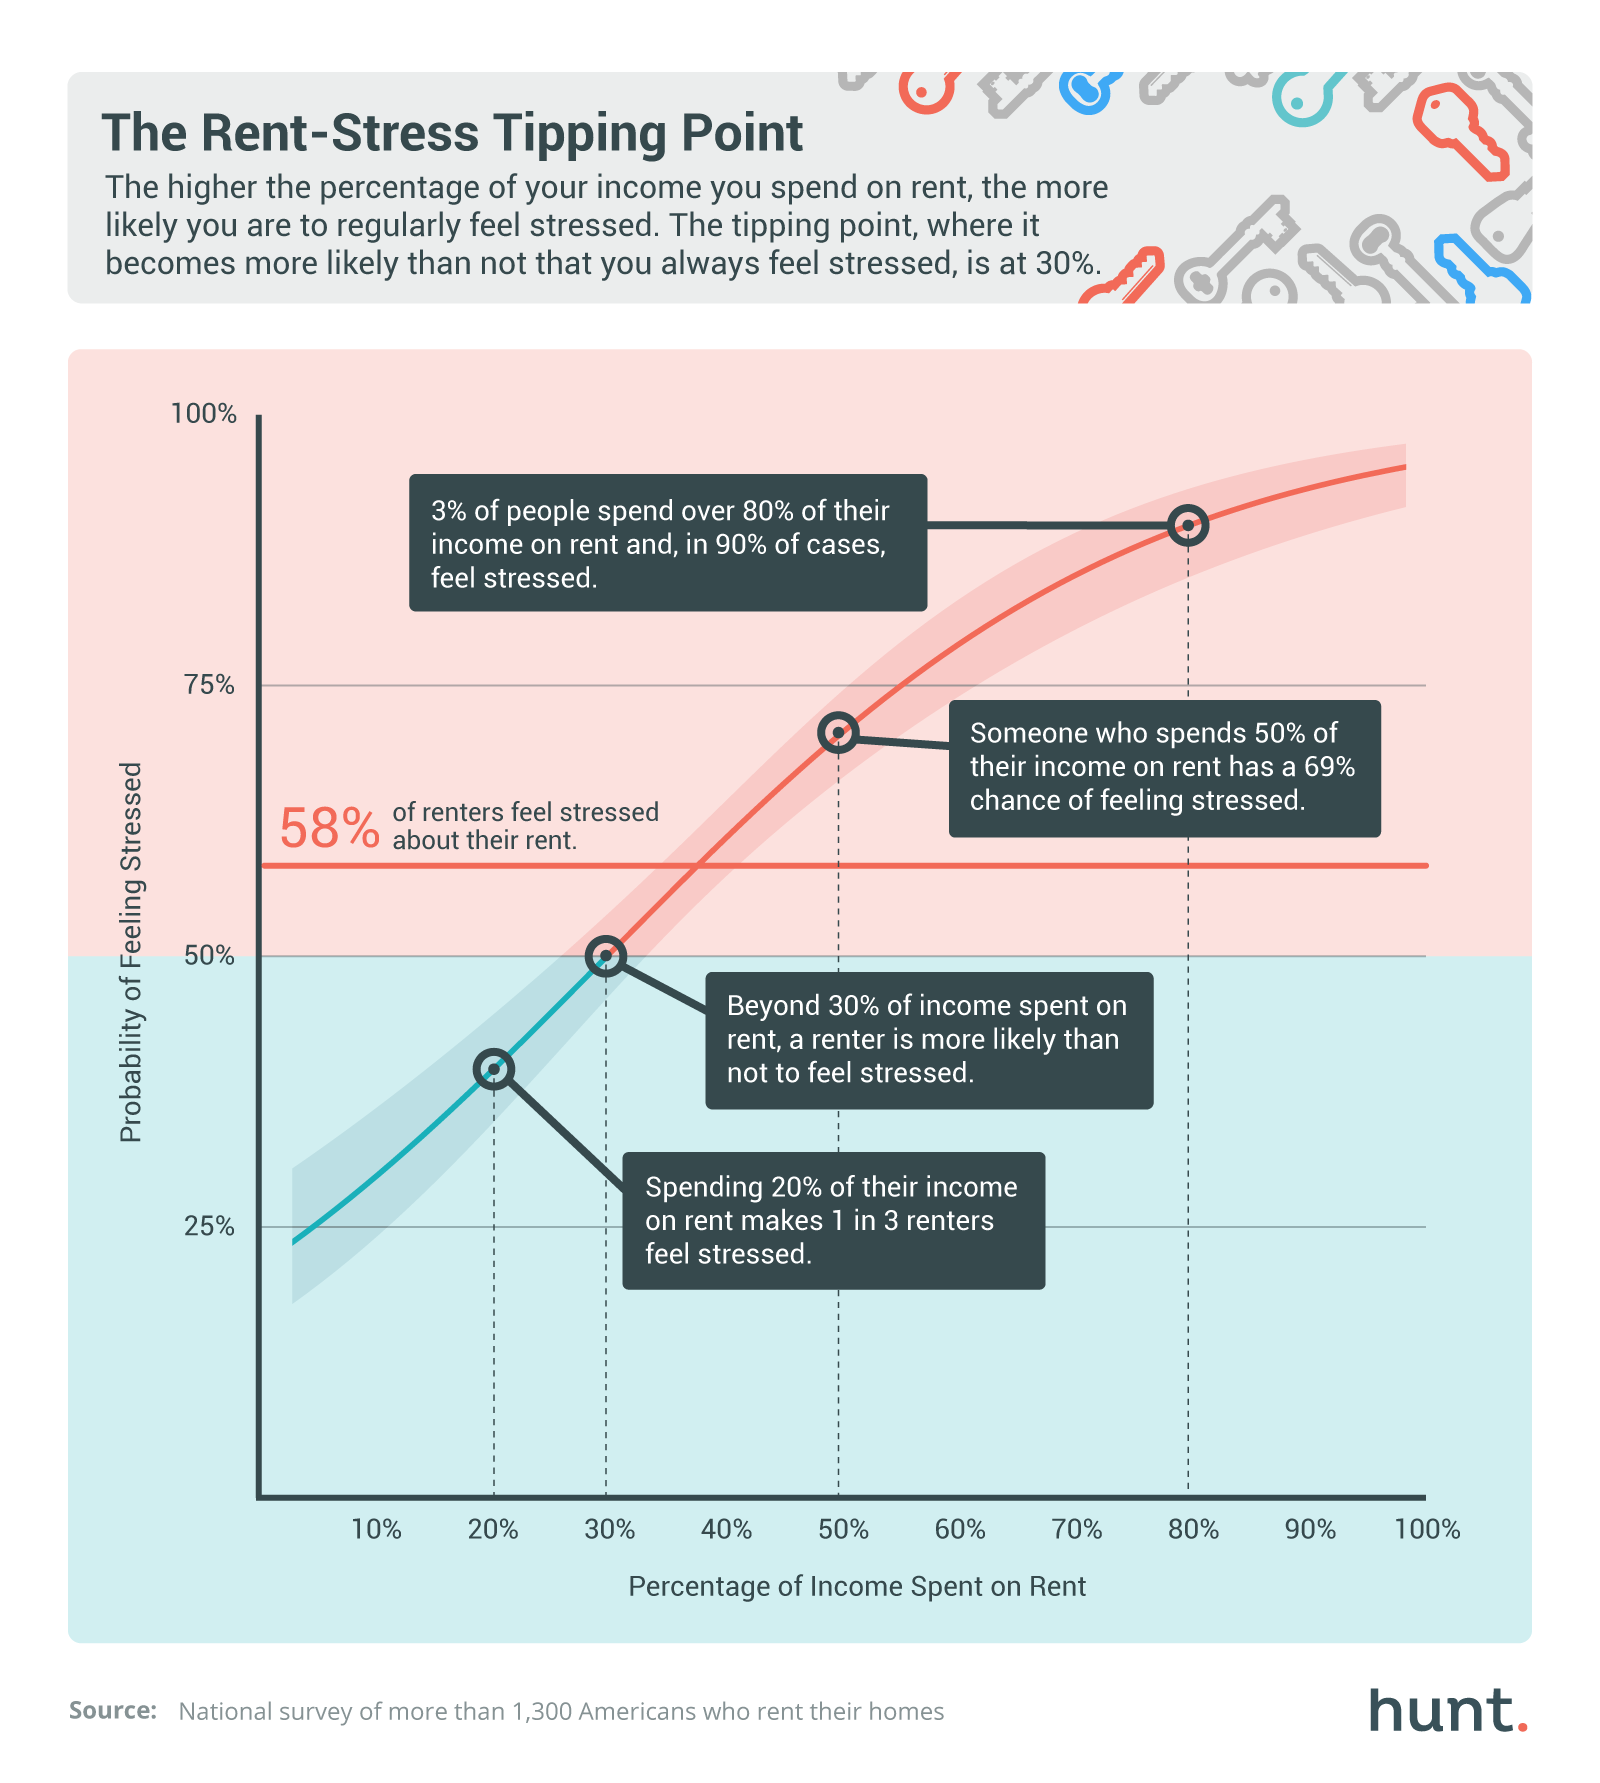 The Odds of Your Rent Making You Feel Stressed